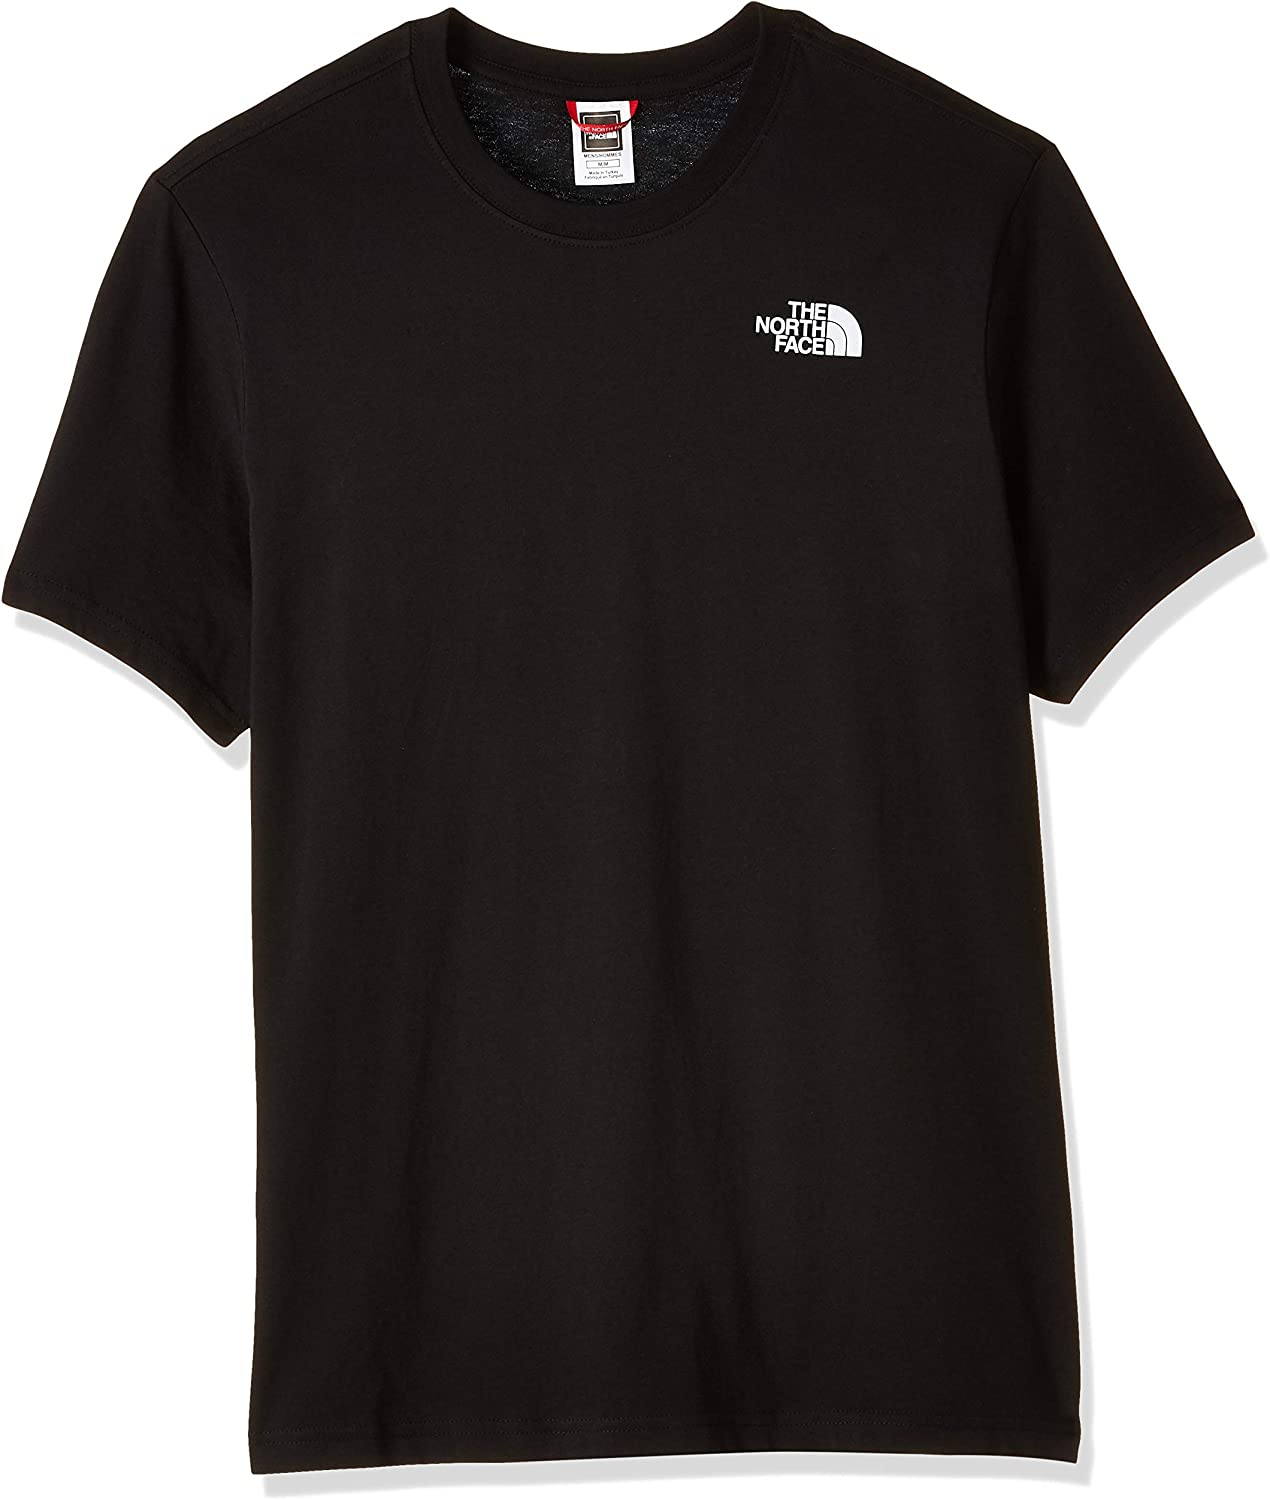 The North Face S/S Red Box tee Camiseta, Hombre